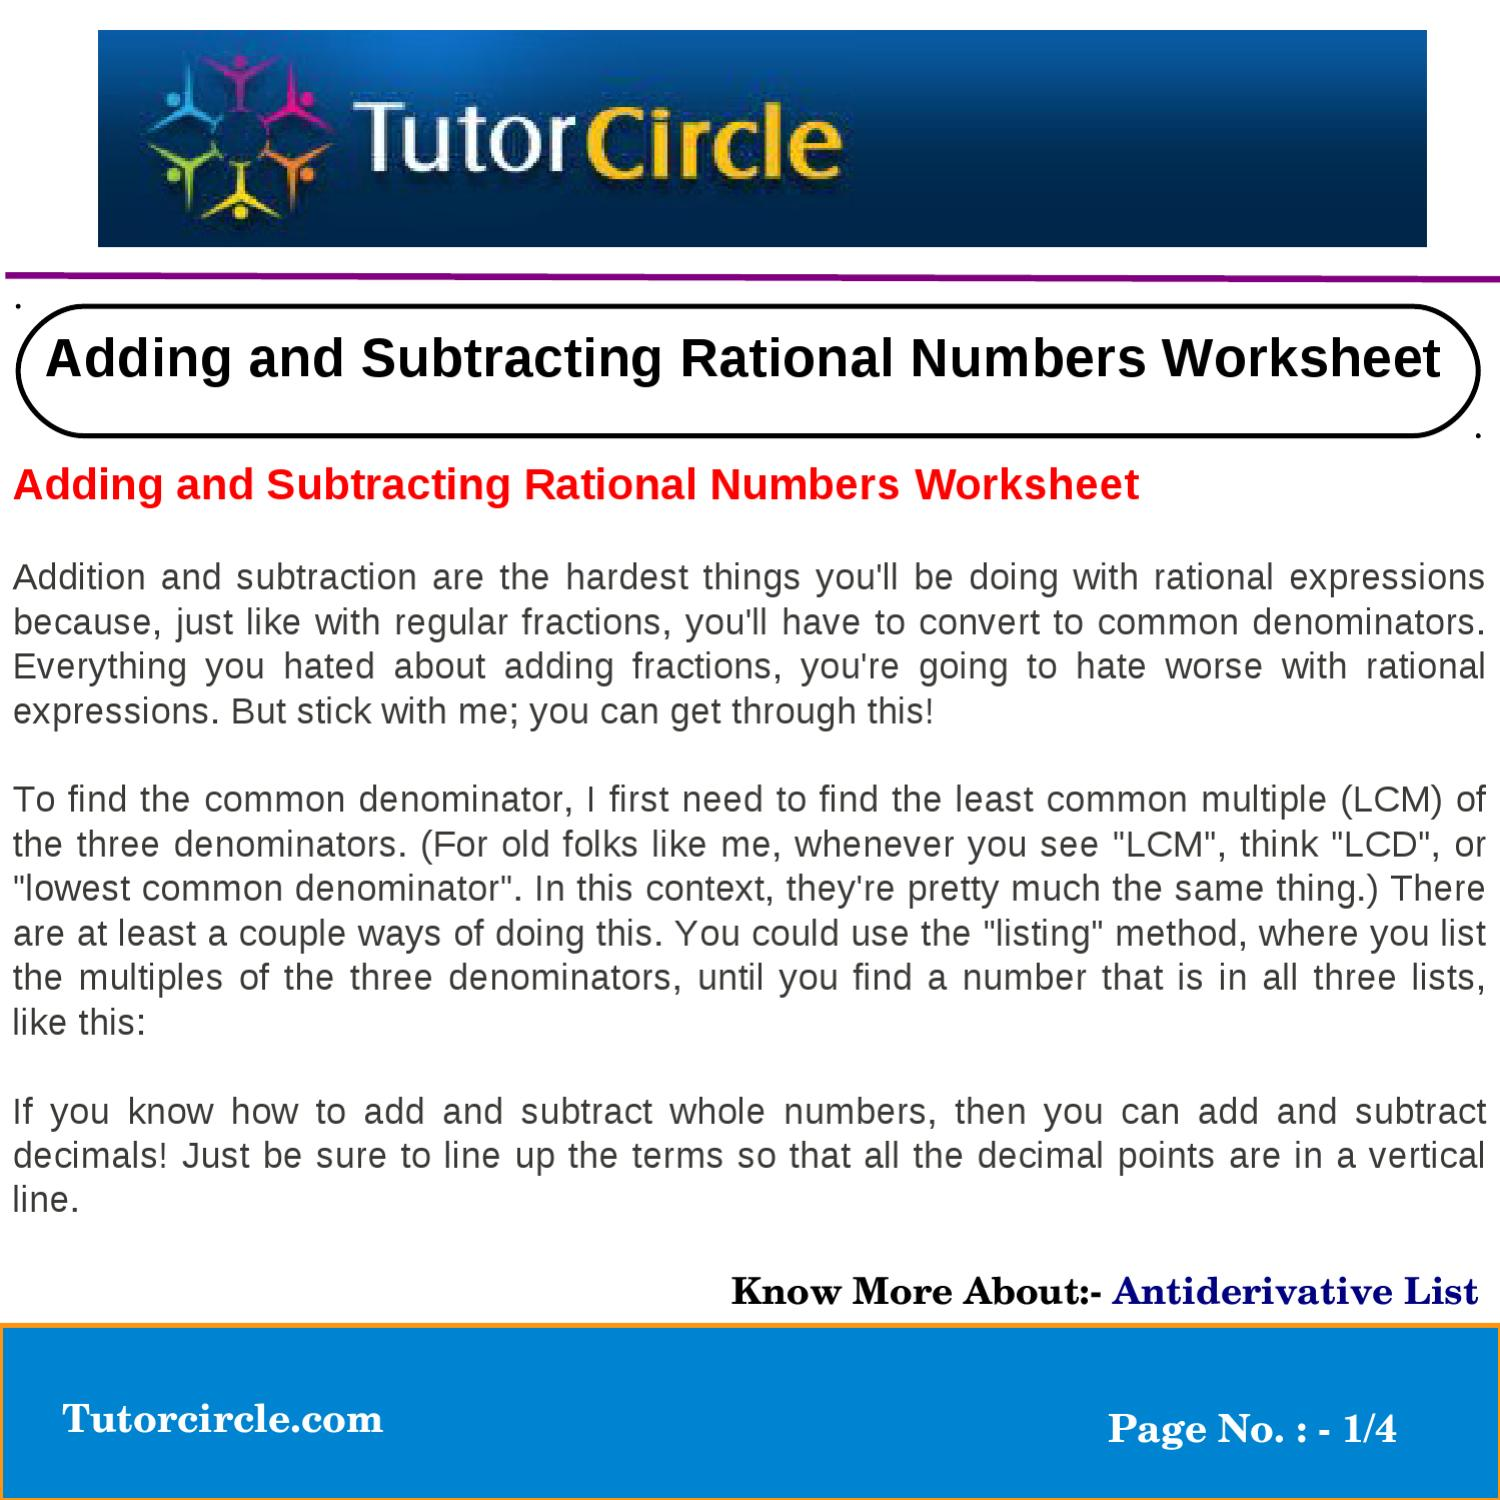 Adding and Subtracting Rational Numbers Worksheet by tutorcircle – Rational Numbers Worksheet